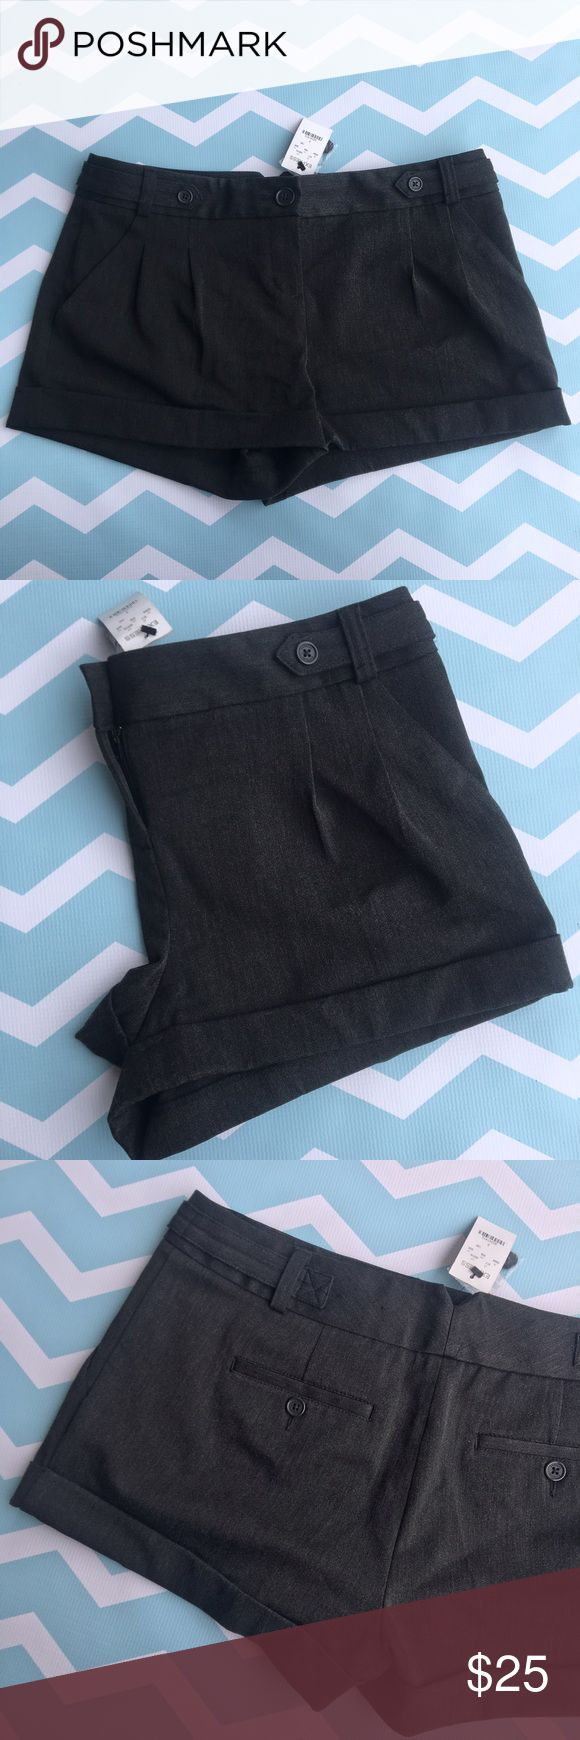 "NWT Express pleated gray shorts size 8 NWT Express pleated gray shorts size 8. Cute with a nice shirt and wedges/booties.   🍥Bundle deals available (I carry various sizes and brands in my closet): 2 items 10% off, 3 items 15% off, 4 items or more 20% off.  🍥No trades, modeling, or lowball offers please. 🍥All reasonable offers accepted only through ""offer"" button. Please submit offer willing to pay as I prefer to not counteroffer. 🍥I appreciate you all. Happy Poshing! Express Shorts"